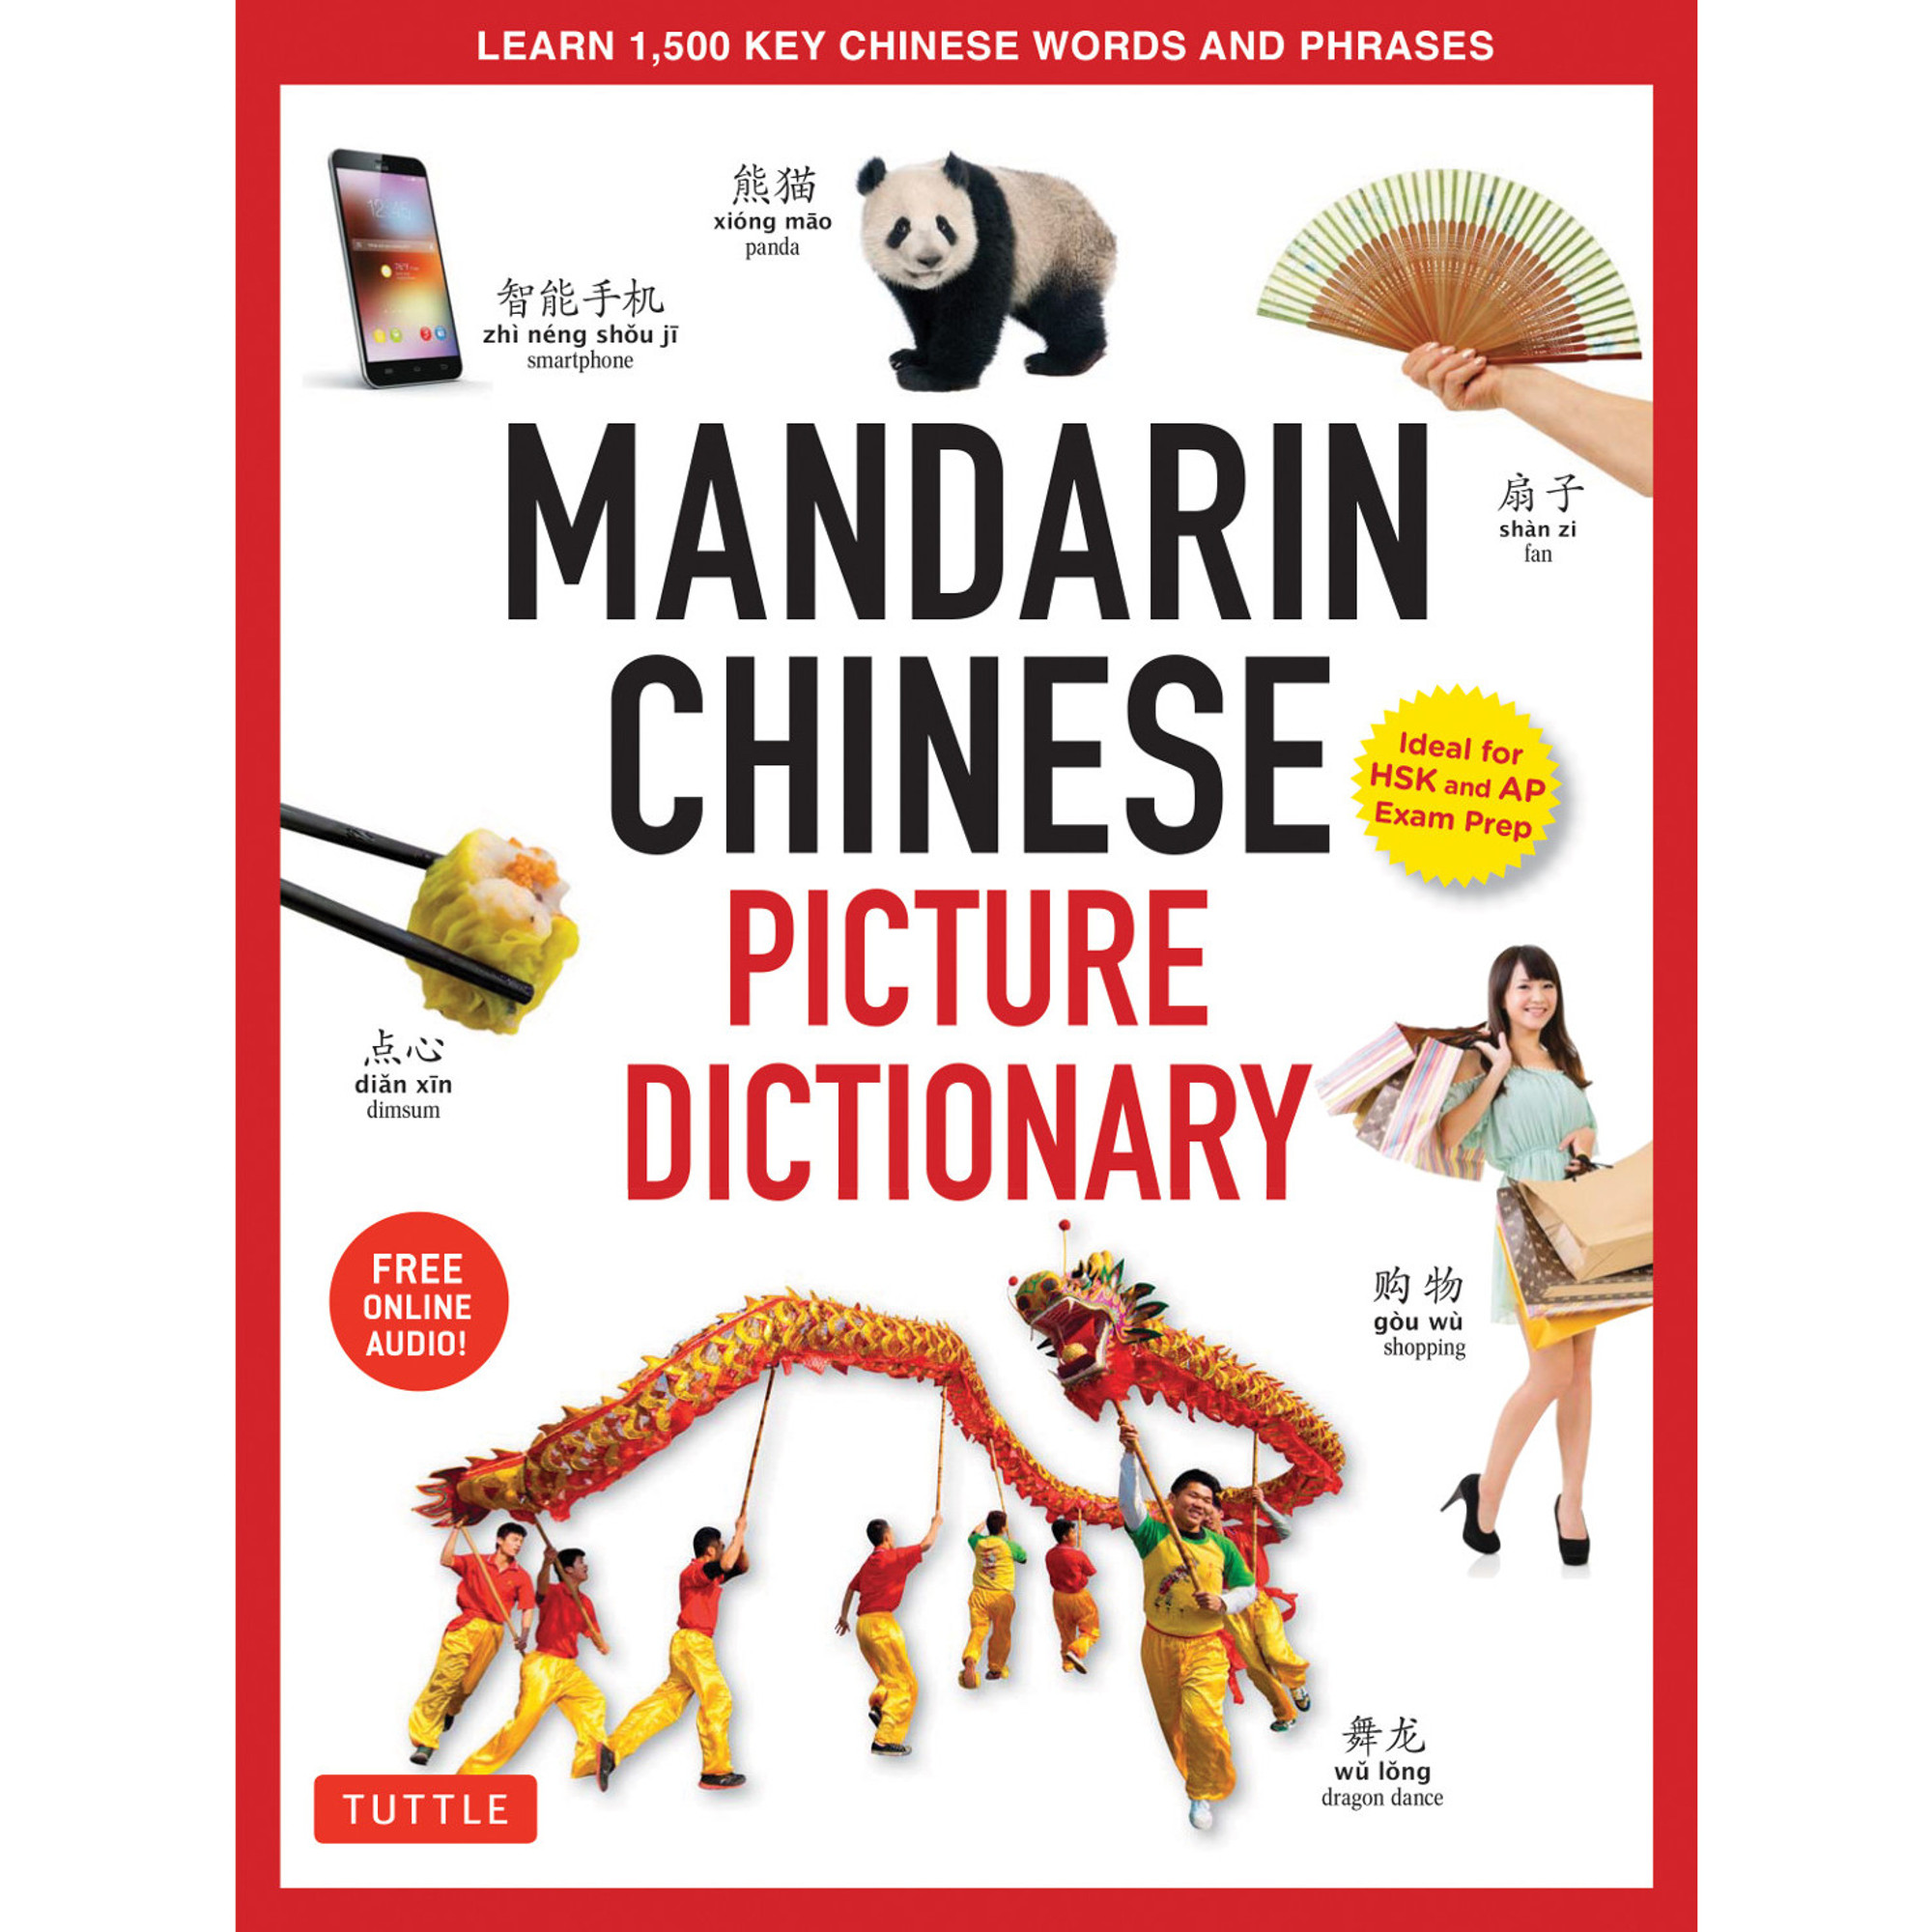 Mandarin Chinese Picture Dictionary - Tuttle Publishing